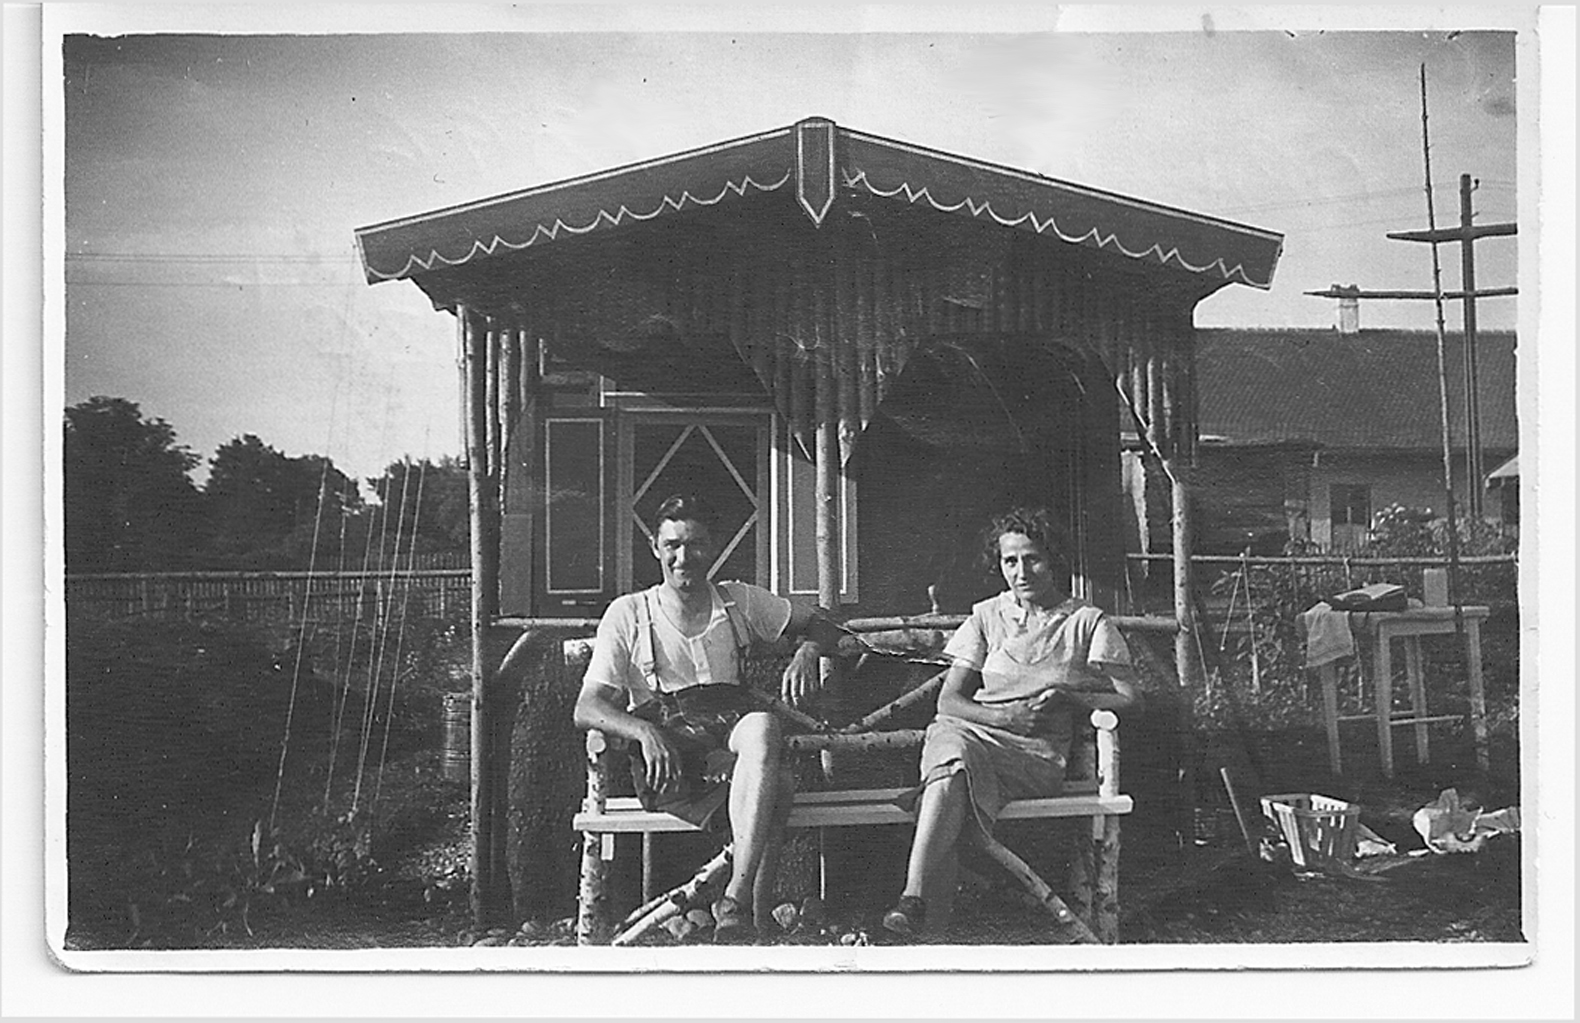 Johanna's parents, pre-war, sitting in front of their garden shed, which they would use as a hiding place for Jewish friends on the run from the Gestapo.